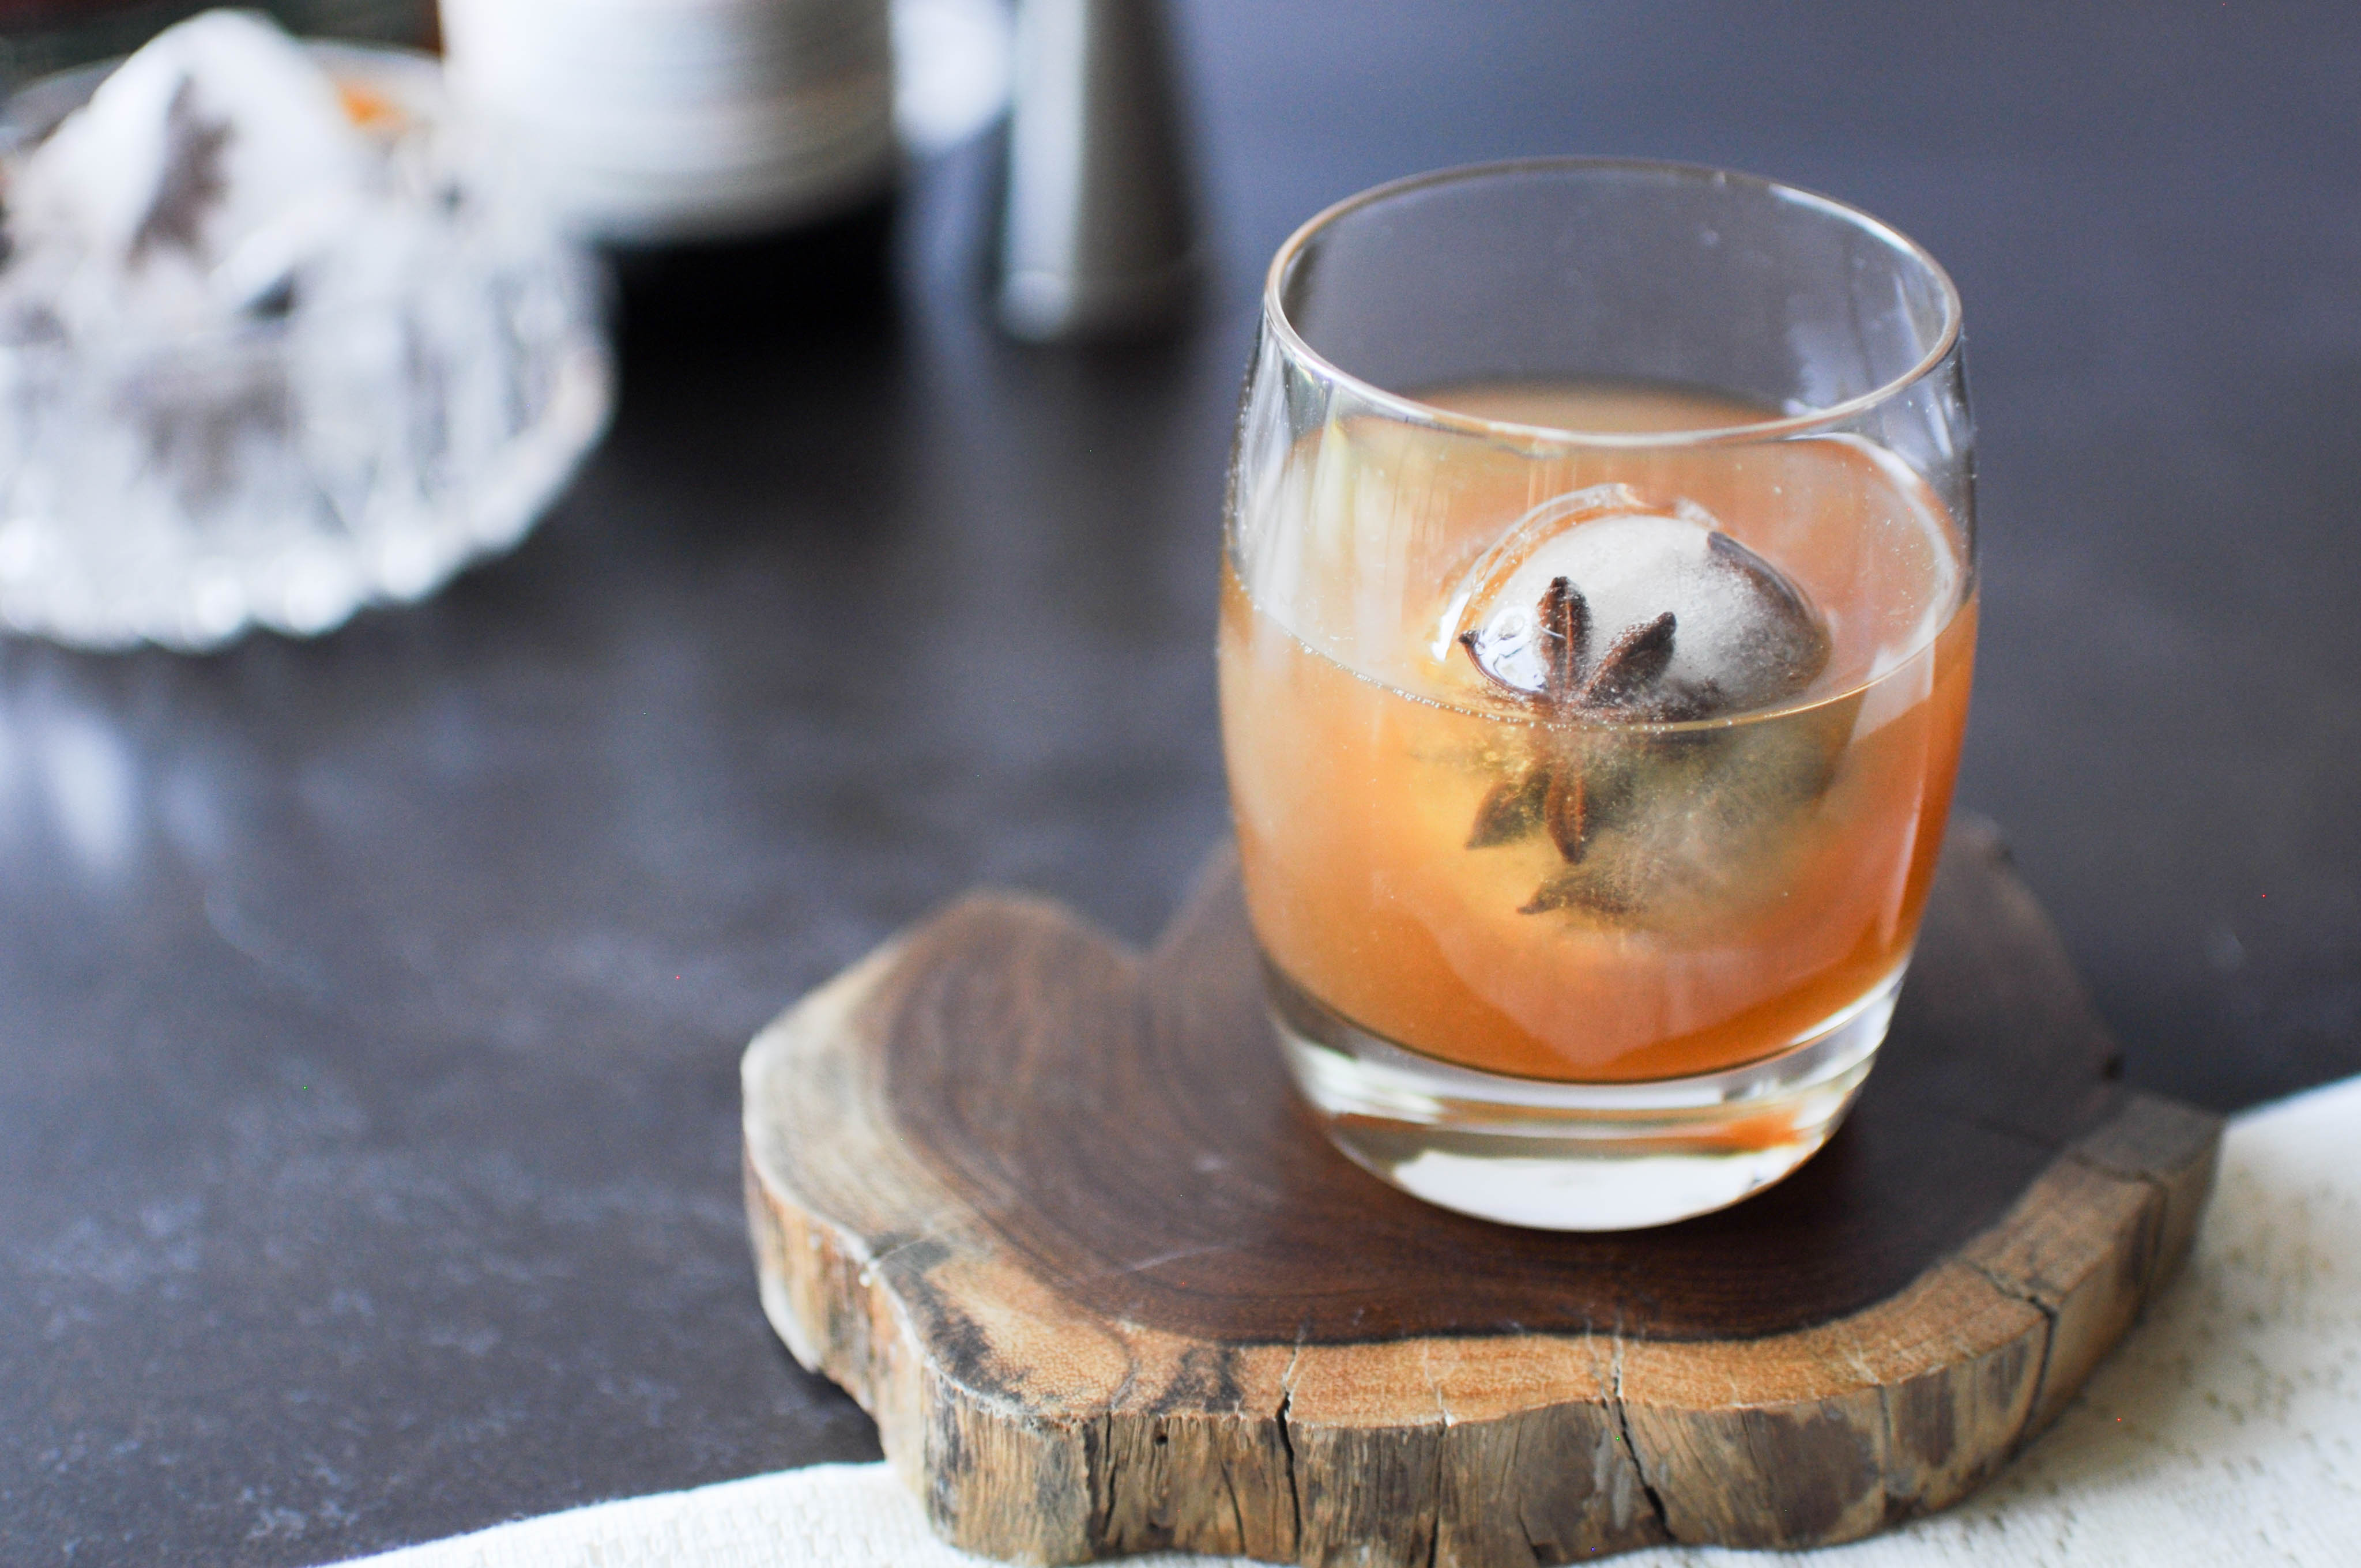 Iced Spiced Toddy made with Iconic Spiced Honey with a seasonal super cube